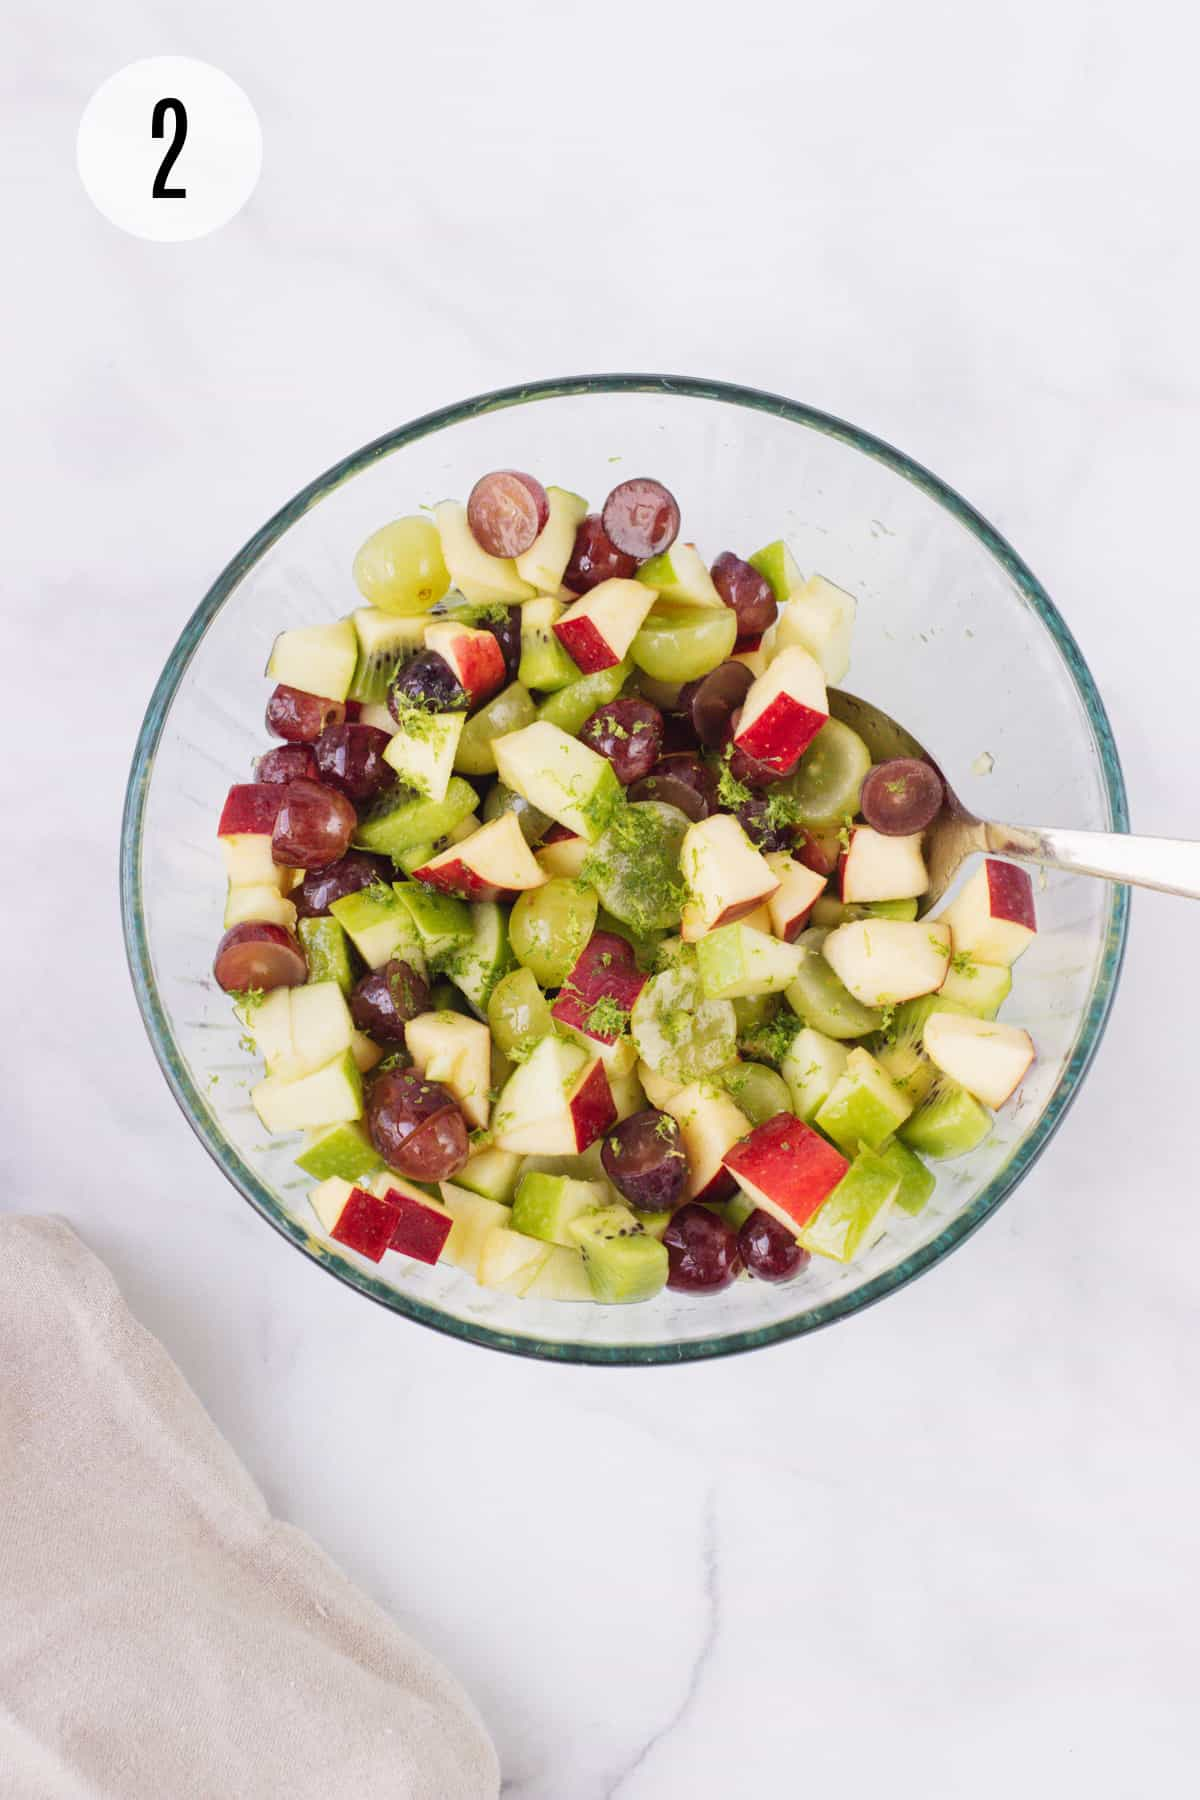 Top view image of Holiday Fruit Salad with chopped apples, grapes, kiwi and lime zest in a glass bowl being stirred by silver spoon.